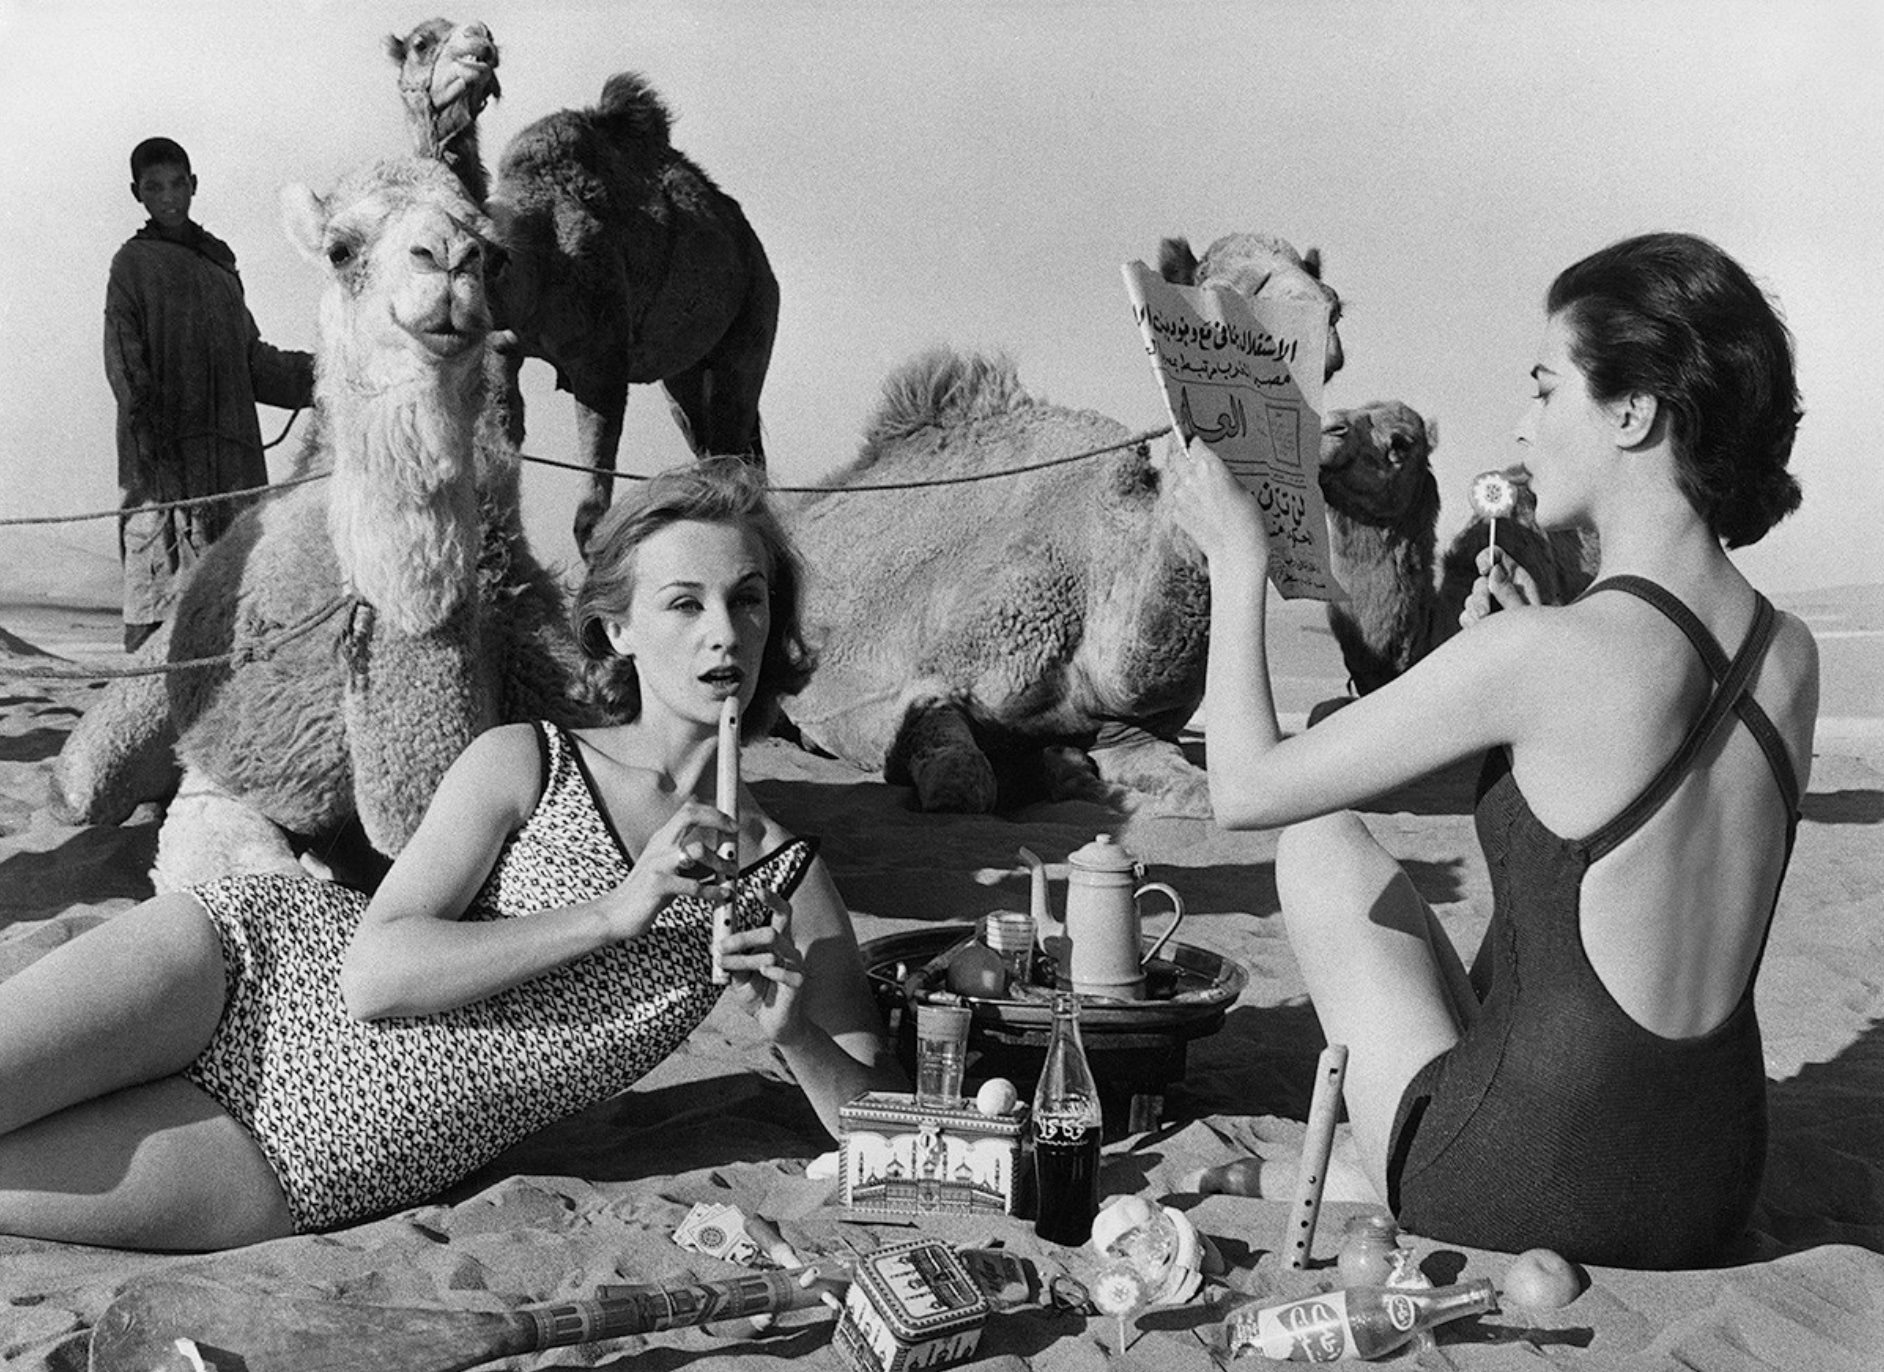 William Klein - Tatiana + Marie Rose + Camels, Morocco, (Vogue),1958